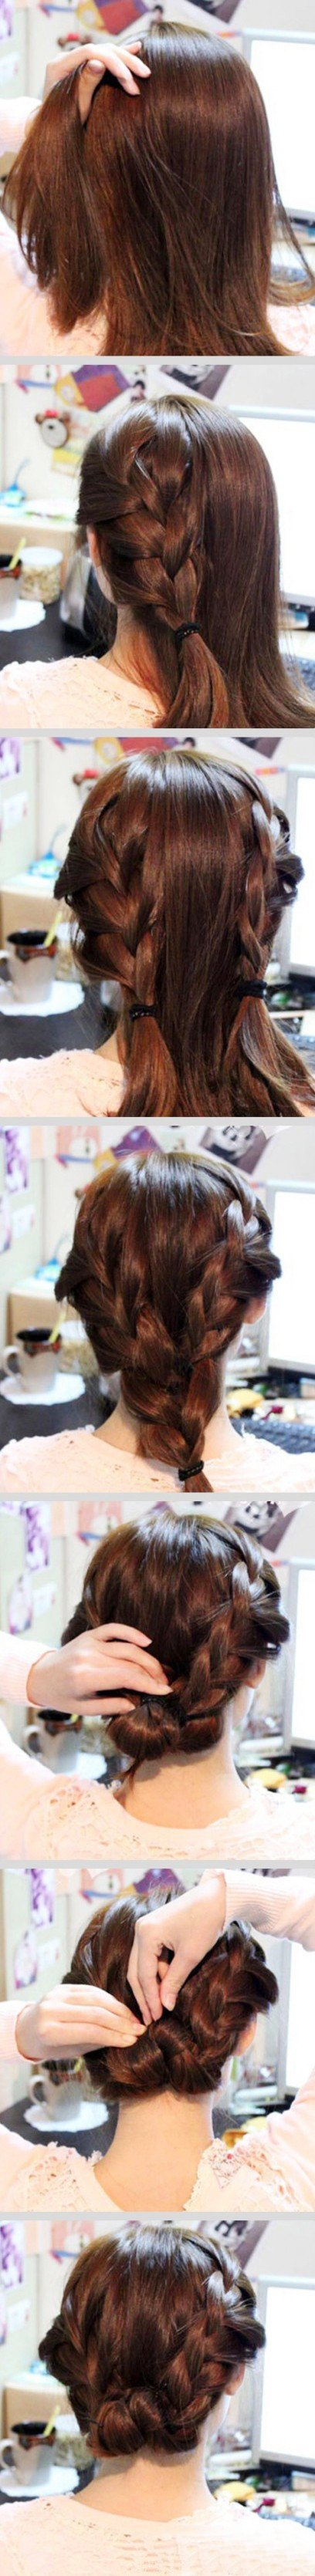 Diy hair fashion hairstyle sexy beauty hairstylesdiy